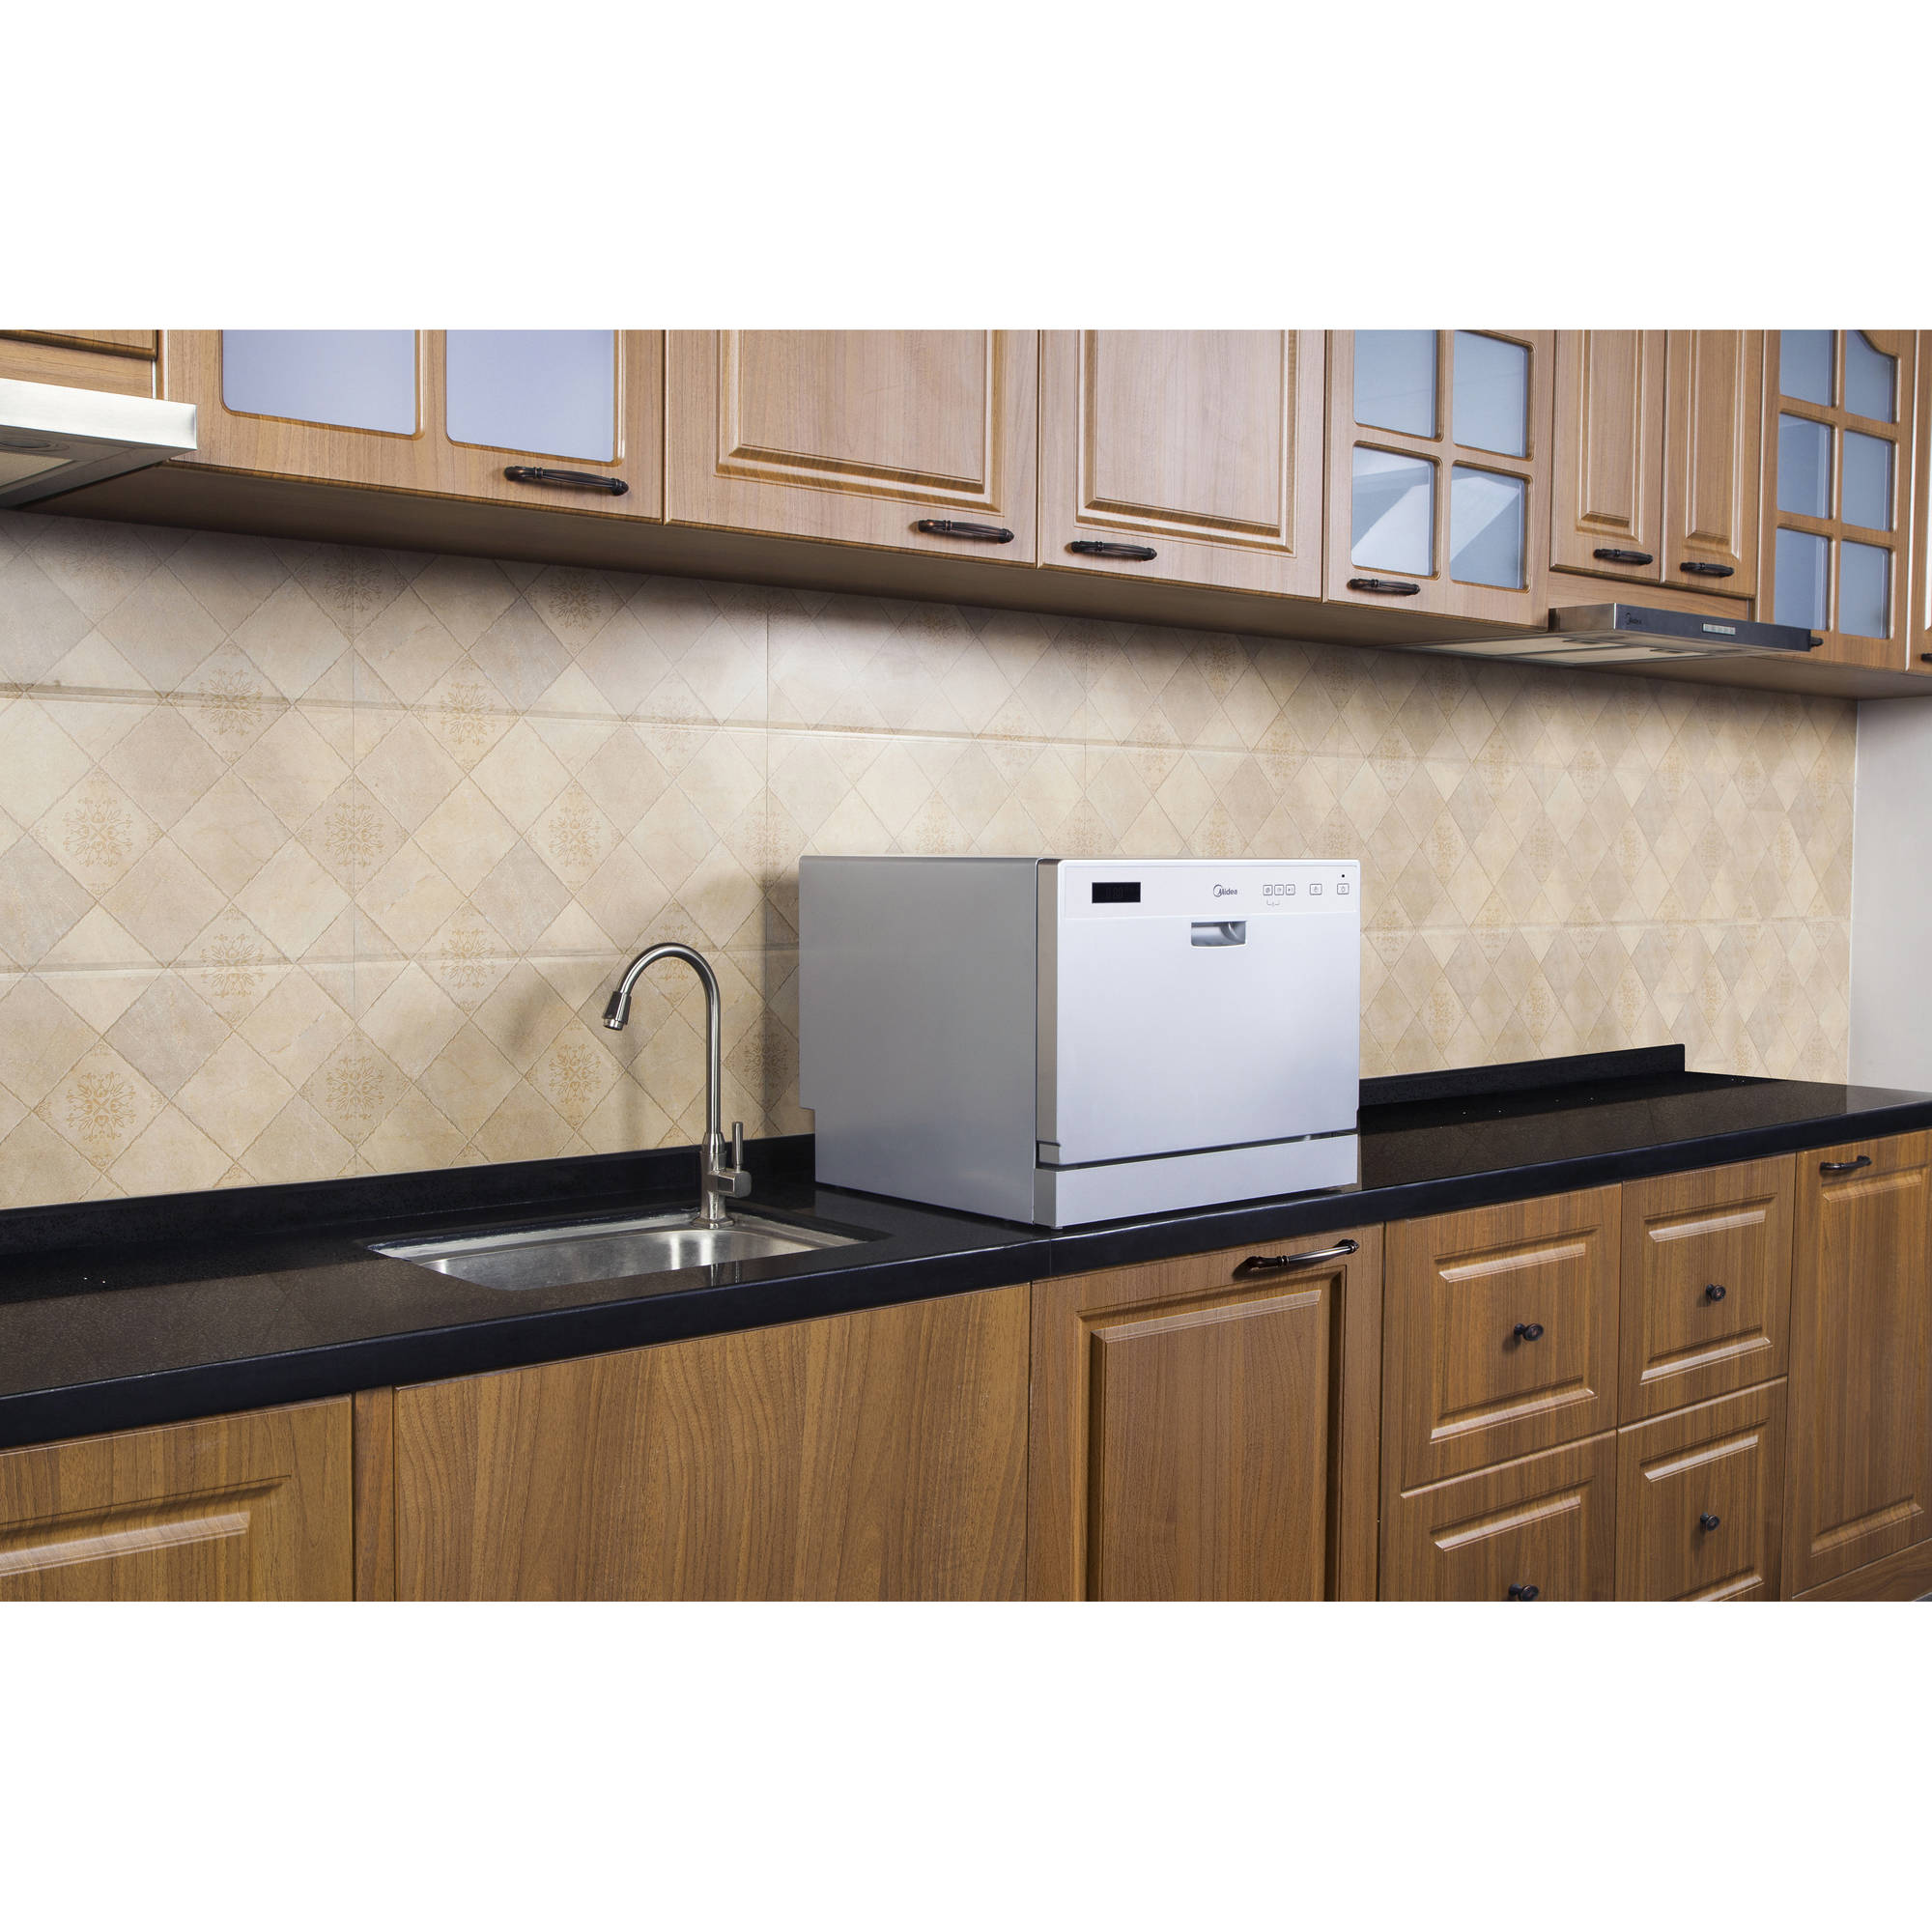 ideas adapter faucet architecture countertop my gallery for nice decoration connecting help need i dishwasher reviews awesome portable